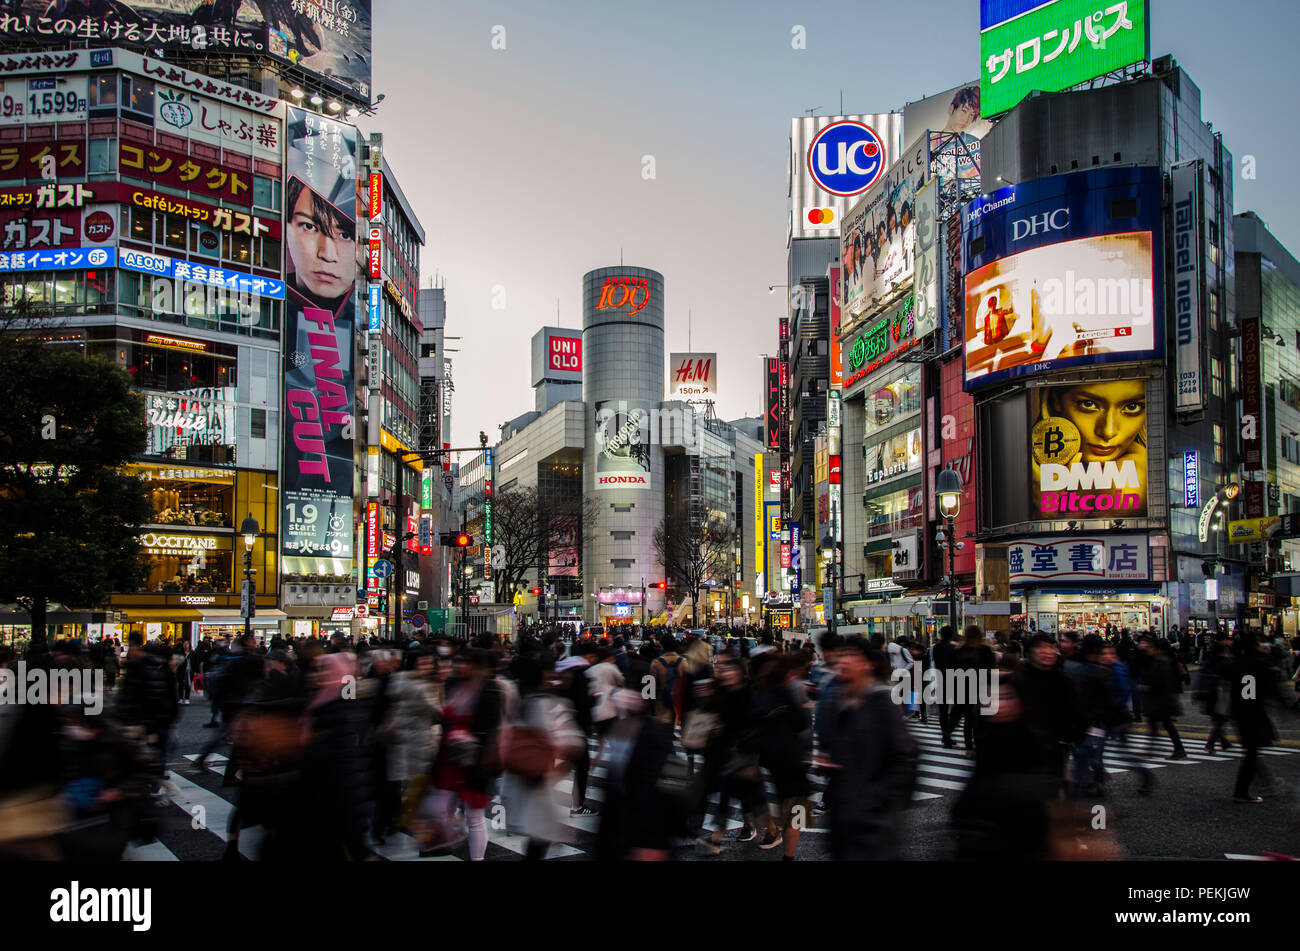 Crowd of people passing Shibya crossing in Tokyo Japan. Vibrant city view, urbanscape, colors of the city. - Stock Image